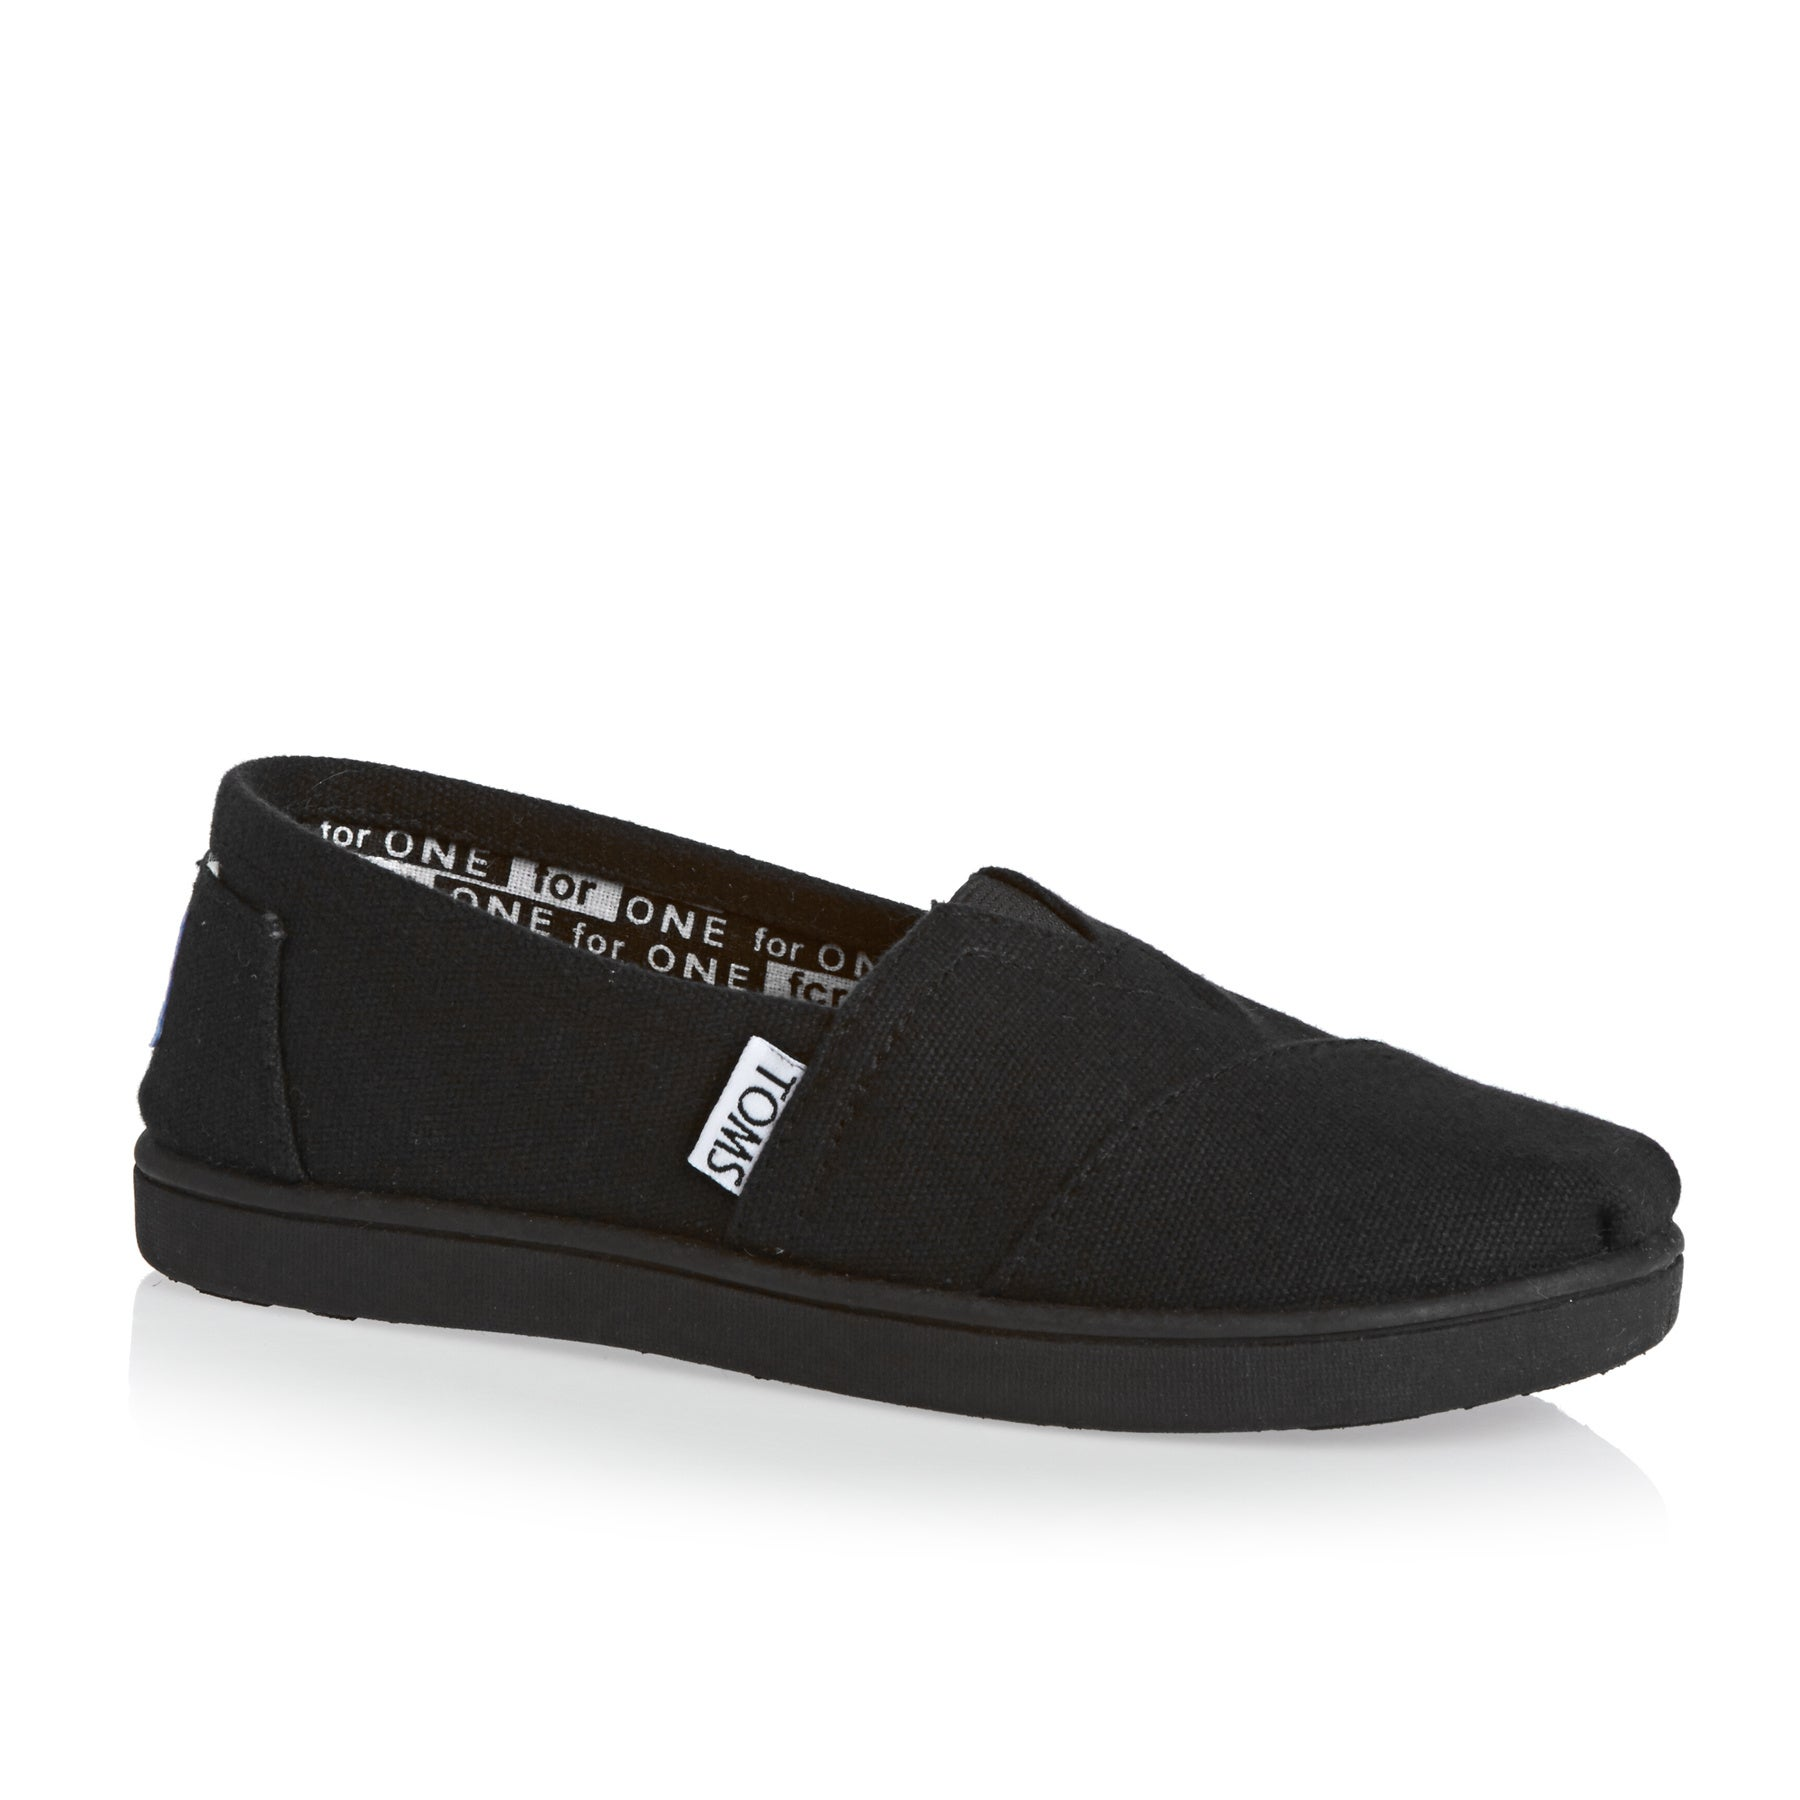 8c88f63a446 Toms Classic Alpargata Kids Slip On Shoes available from Surfdome